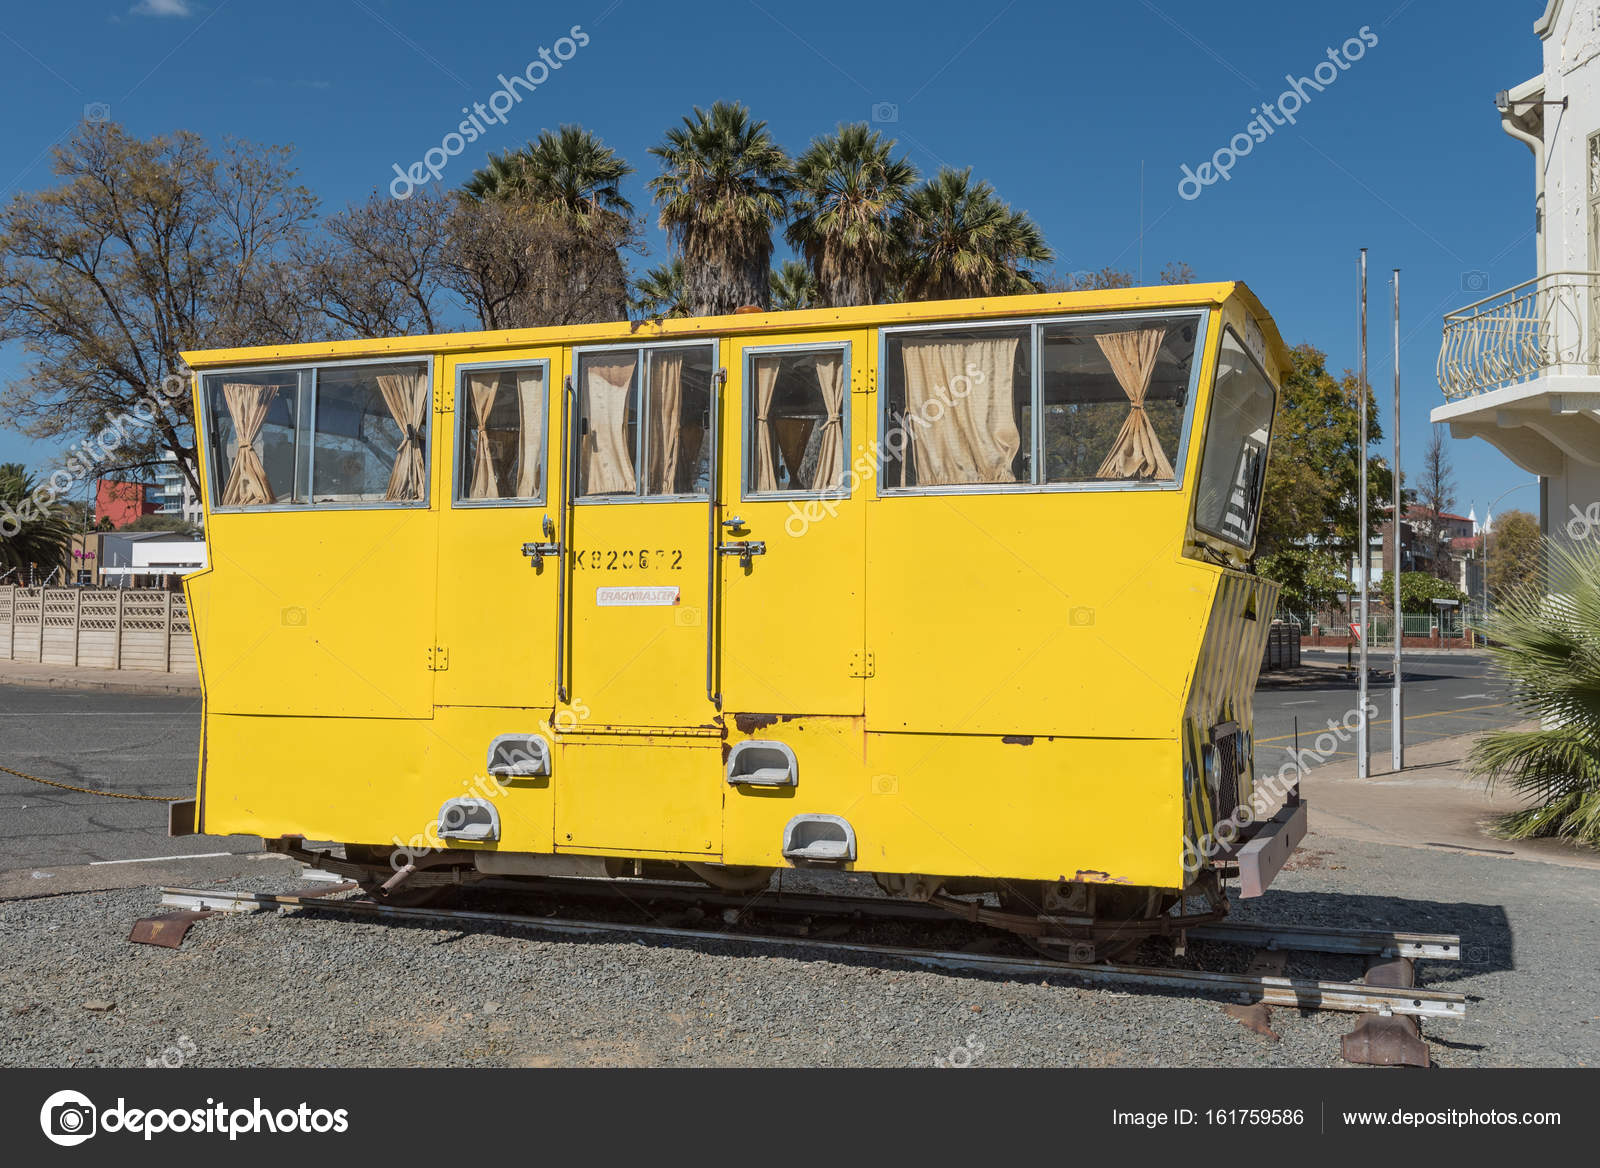 Rail track inspection car in Windhoek – Stock Editorial Photo